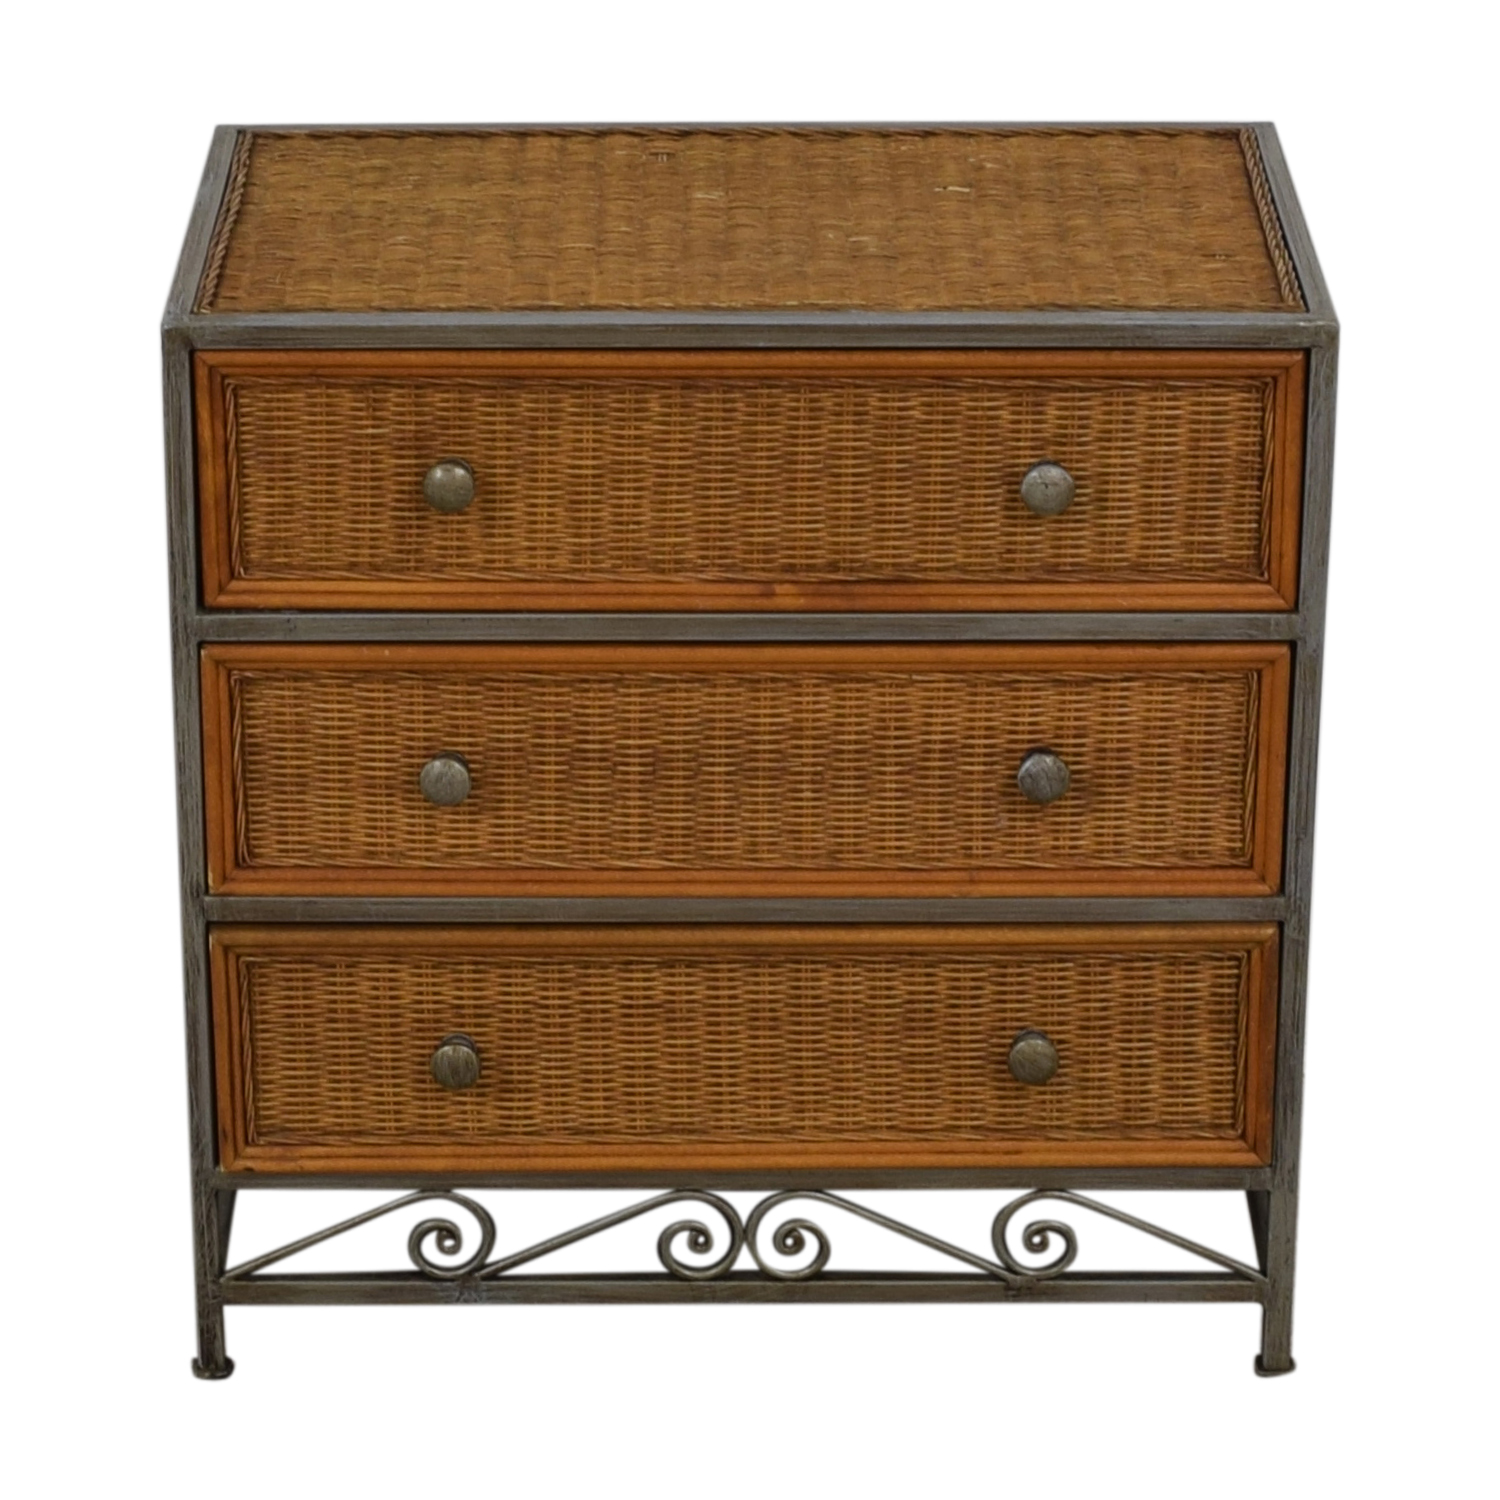 Pier 1 Imports Miranda Three-Drawer Wicker Dresser sale